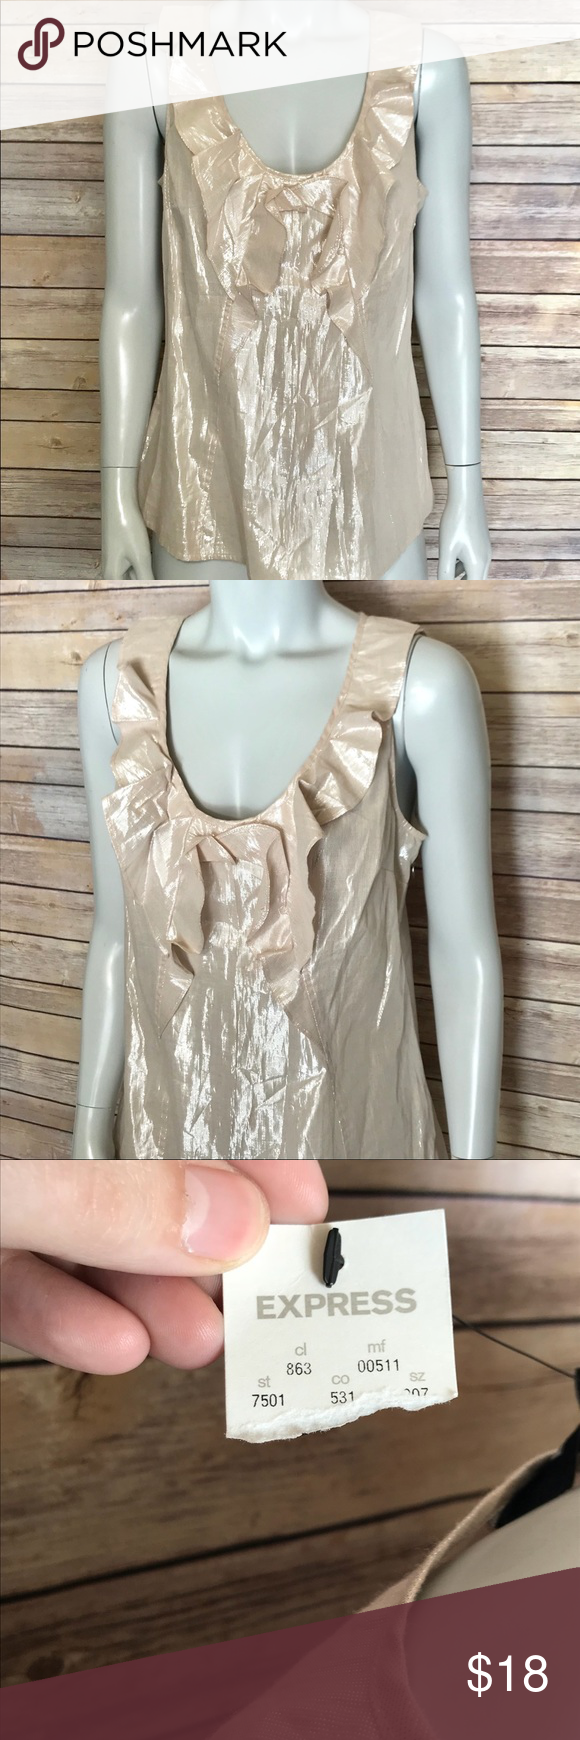 a8a057fe3337d  express  shimmery blush colored blouse Sleeveless scoop neck top is a  metallic champagne color. Ruffles along neckline and down middle.